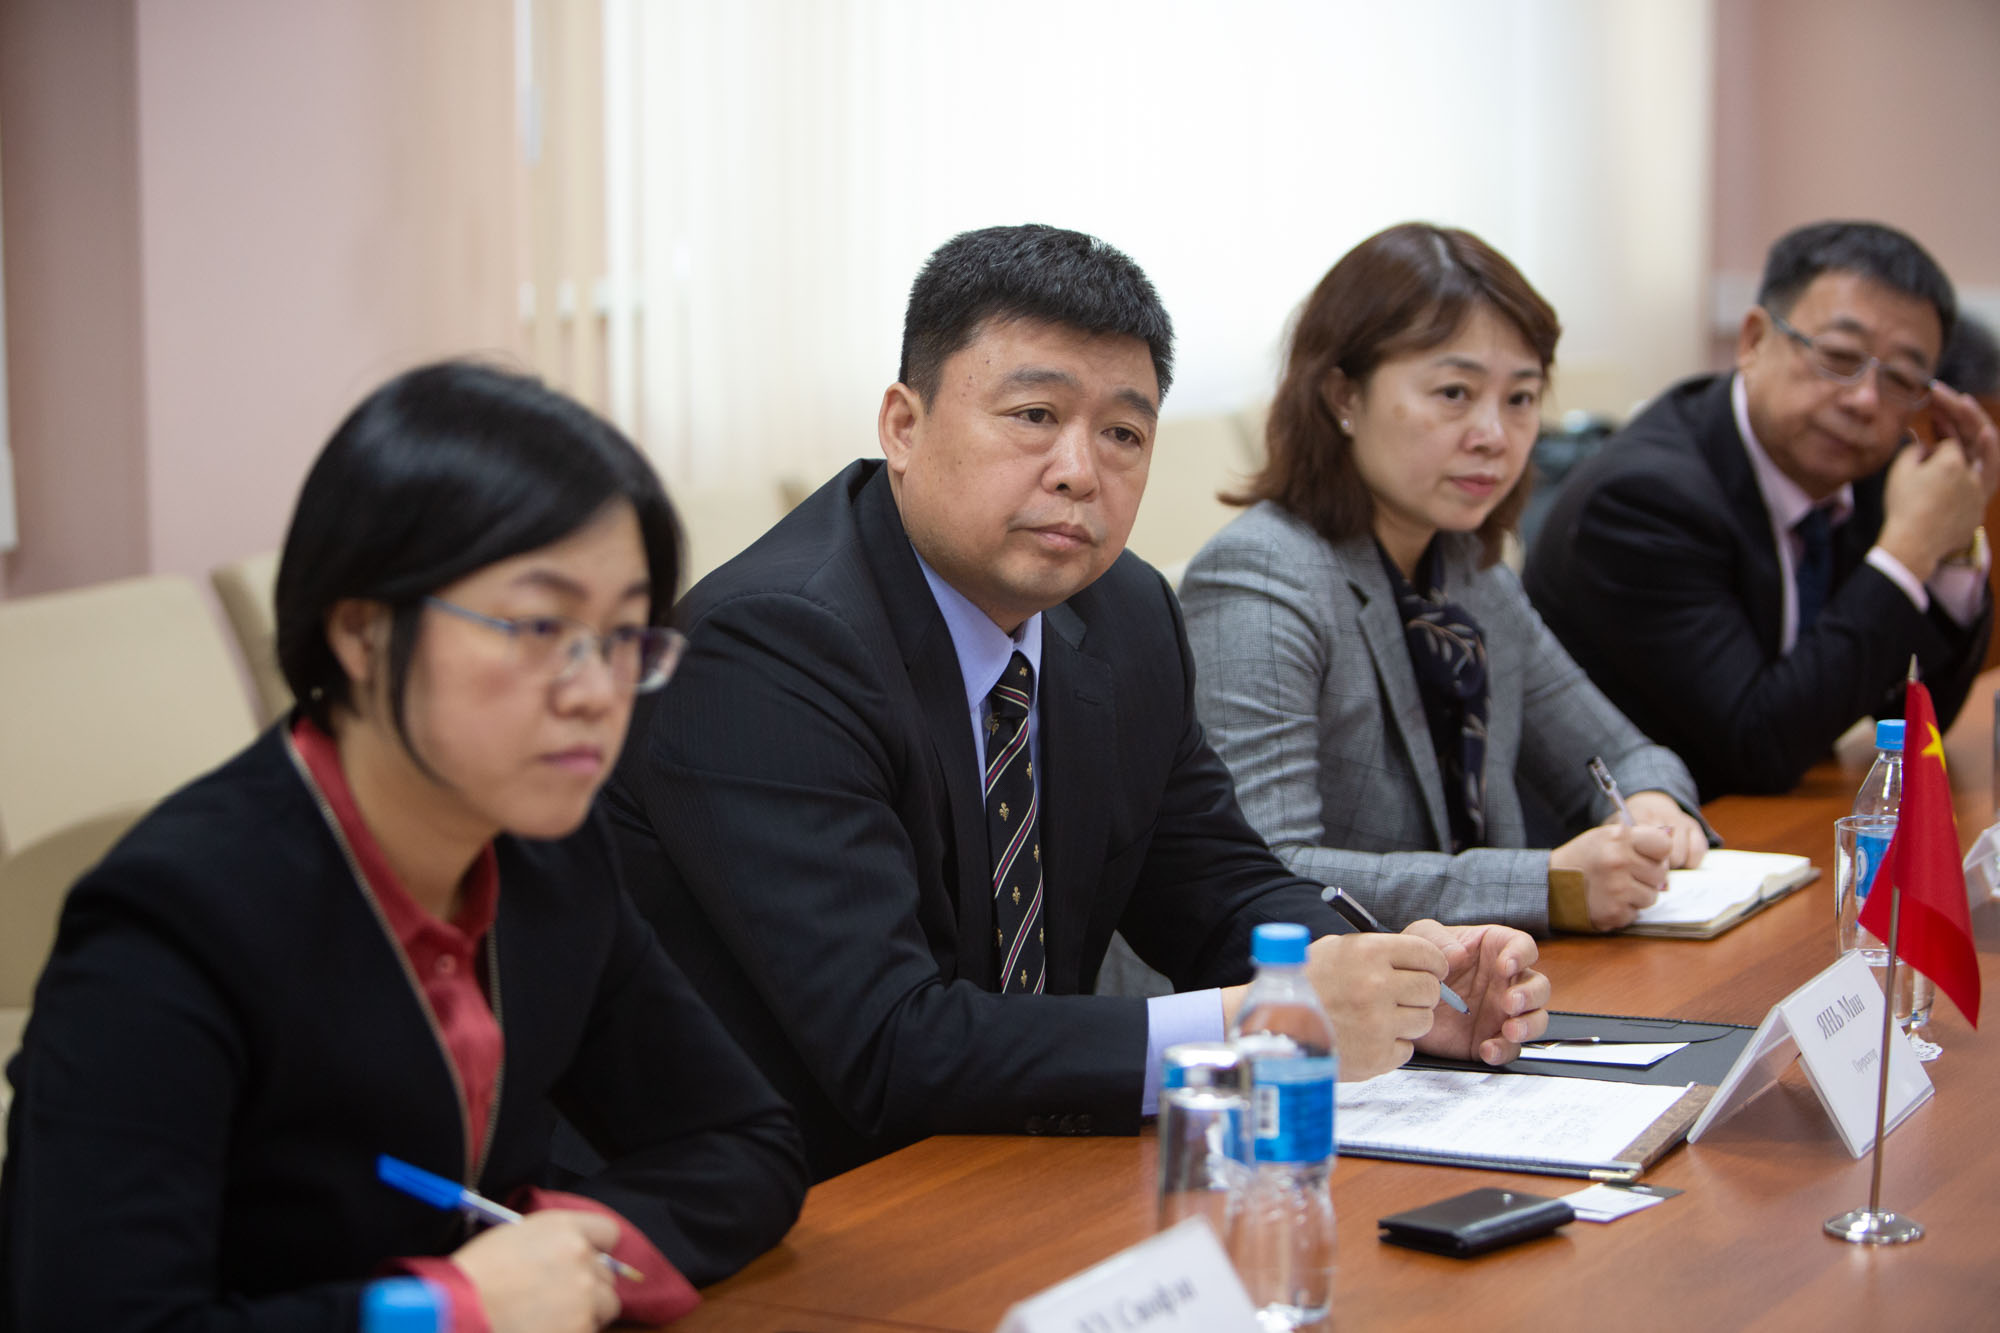 FEFU and Heilongjiang University plan to launch joint educational programs